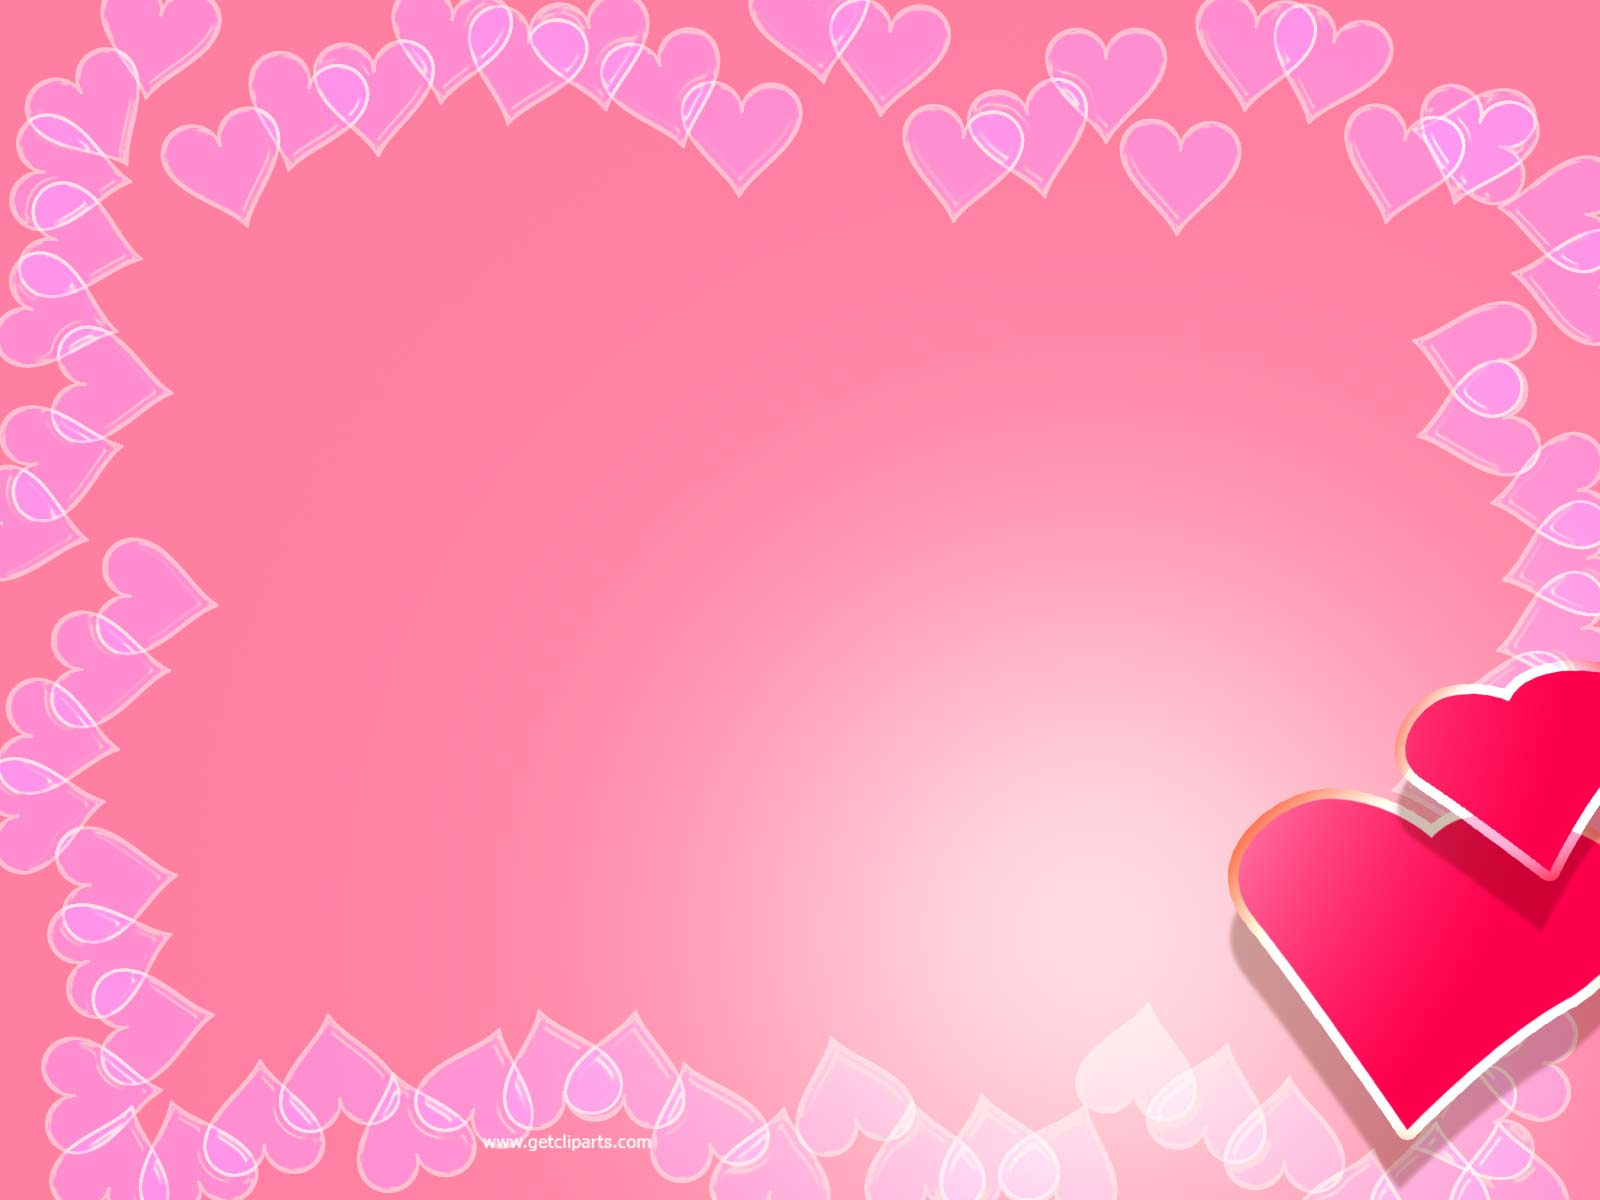 Love powerpoint PPT template for Valentine theme. Hearts in gradient